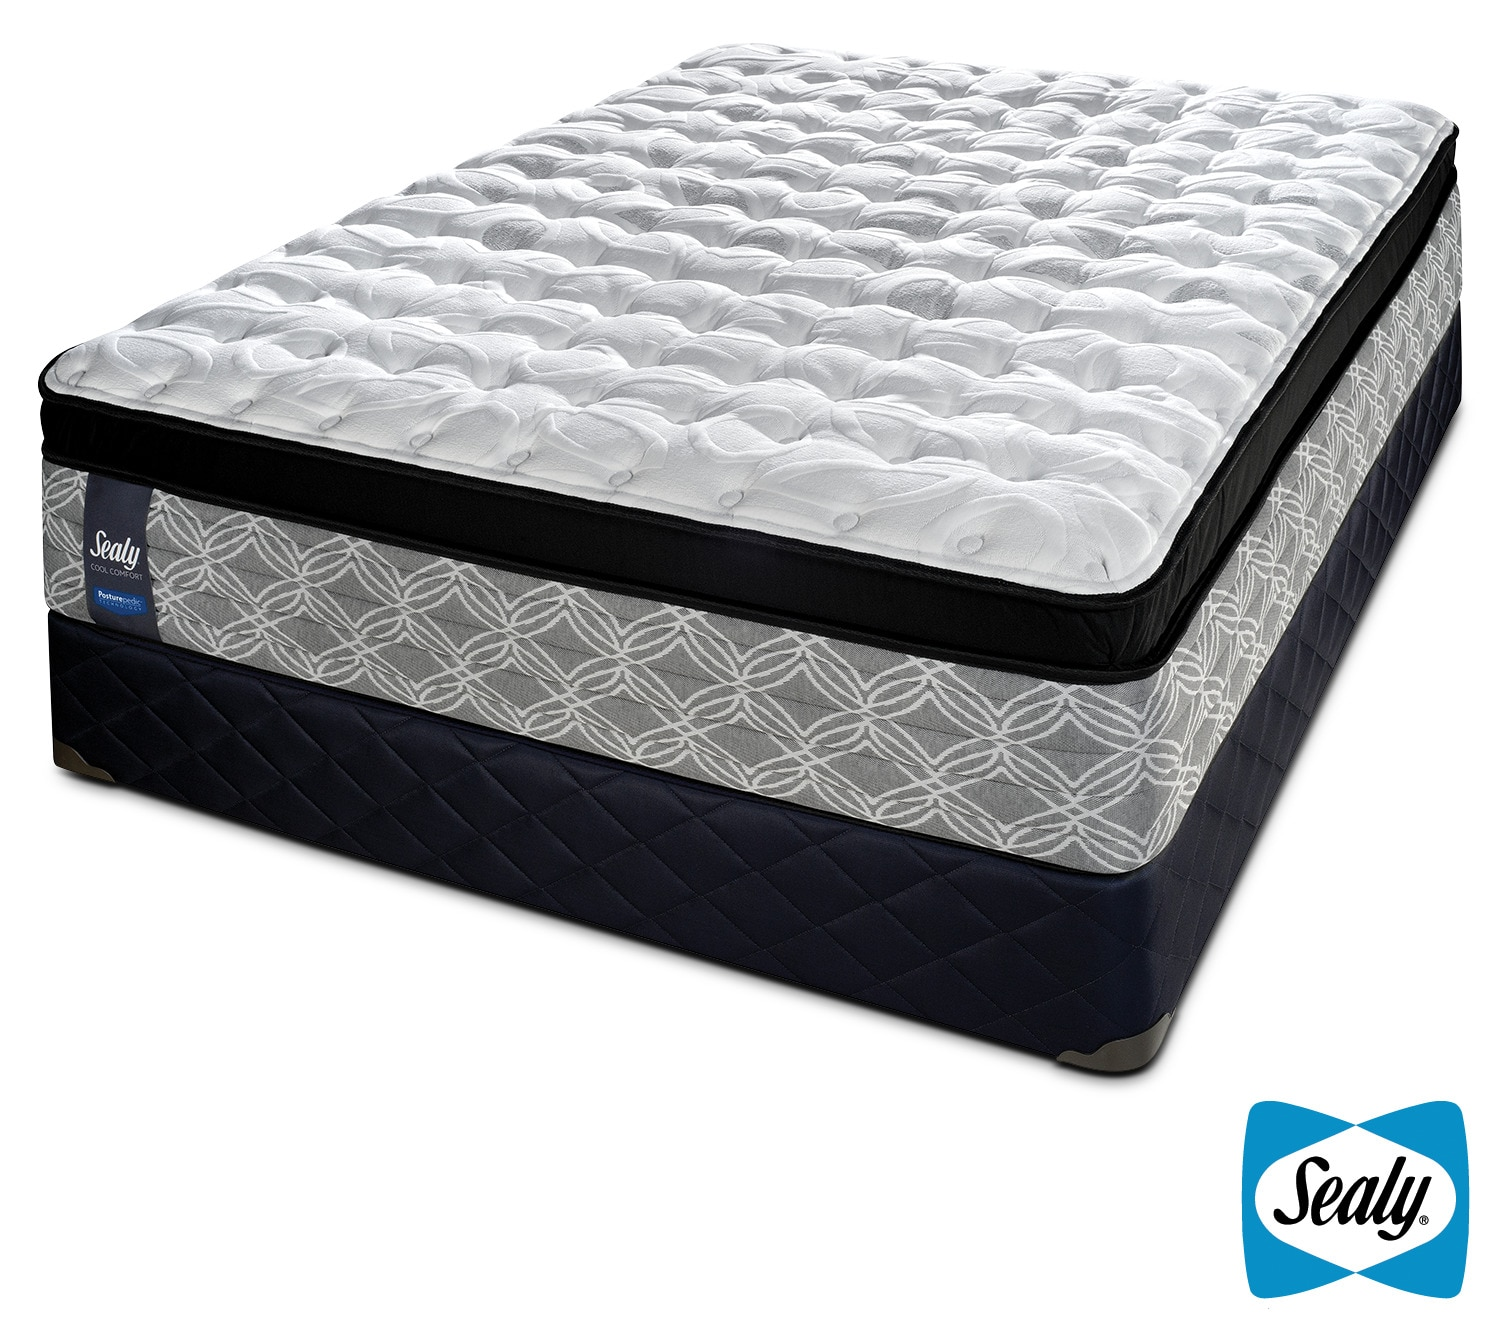 Sealy Sundown Firm Queen Mattress And Boxspring Set Leon 39 S